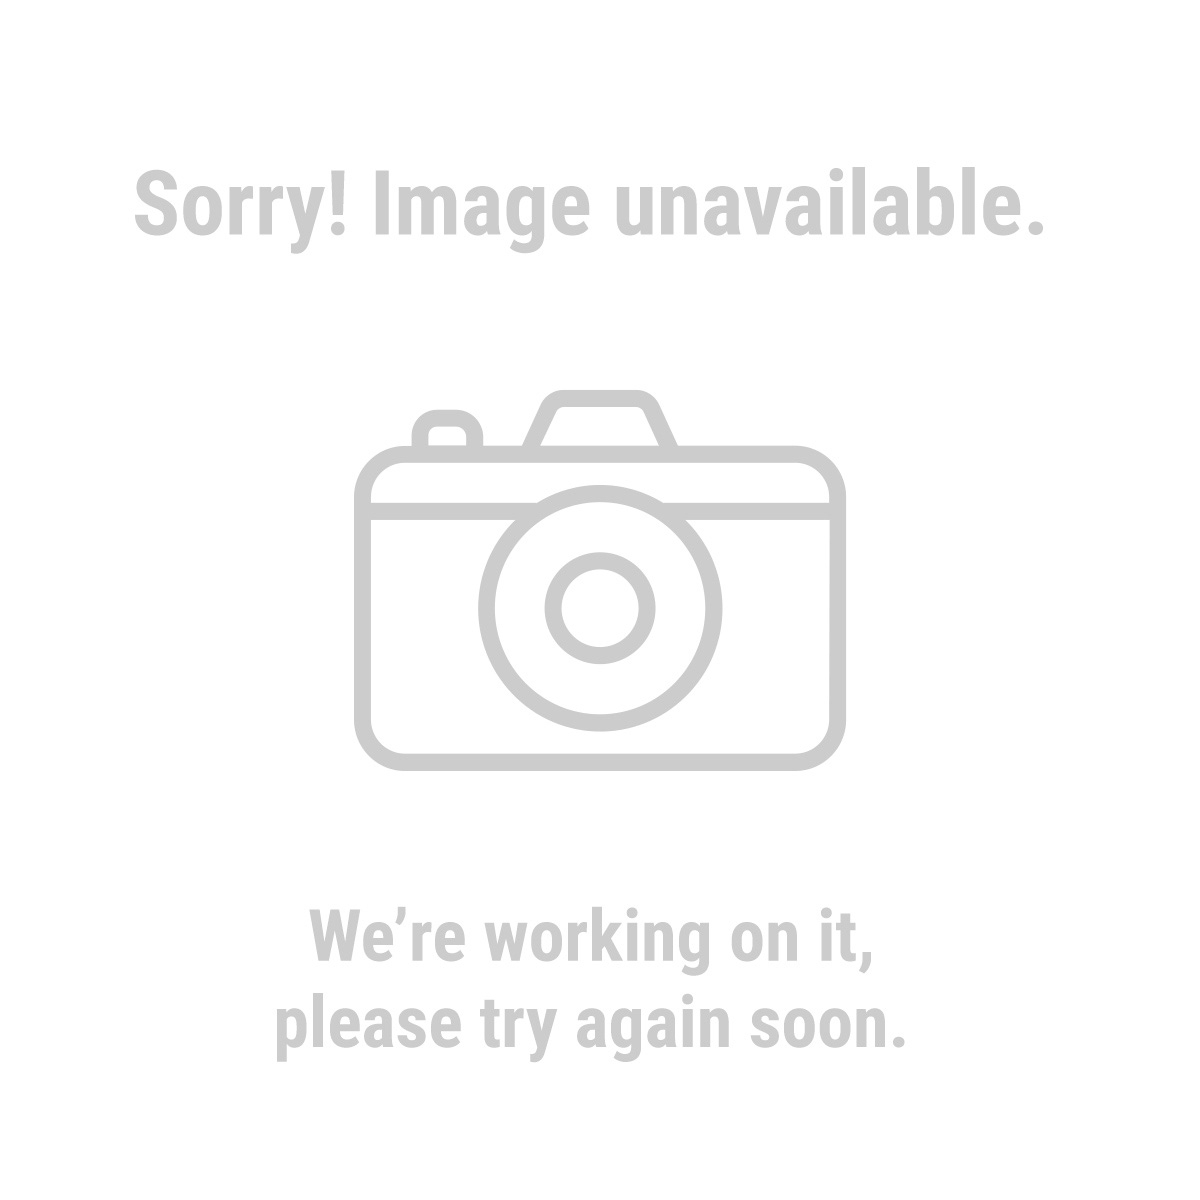 Gordon 92442 10 x 25mm Compact Binoculars